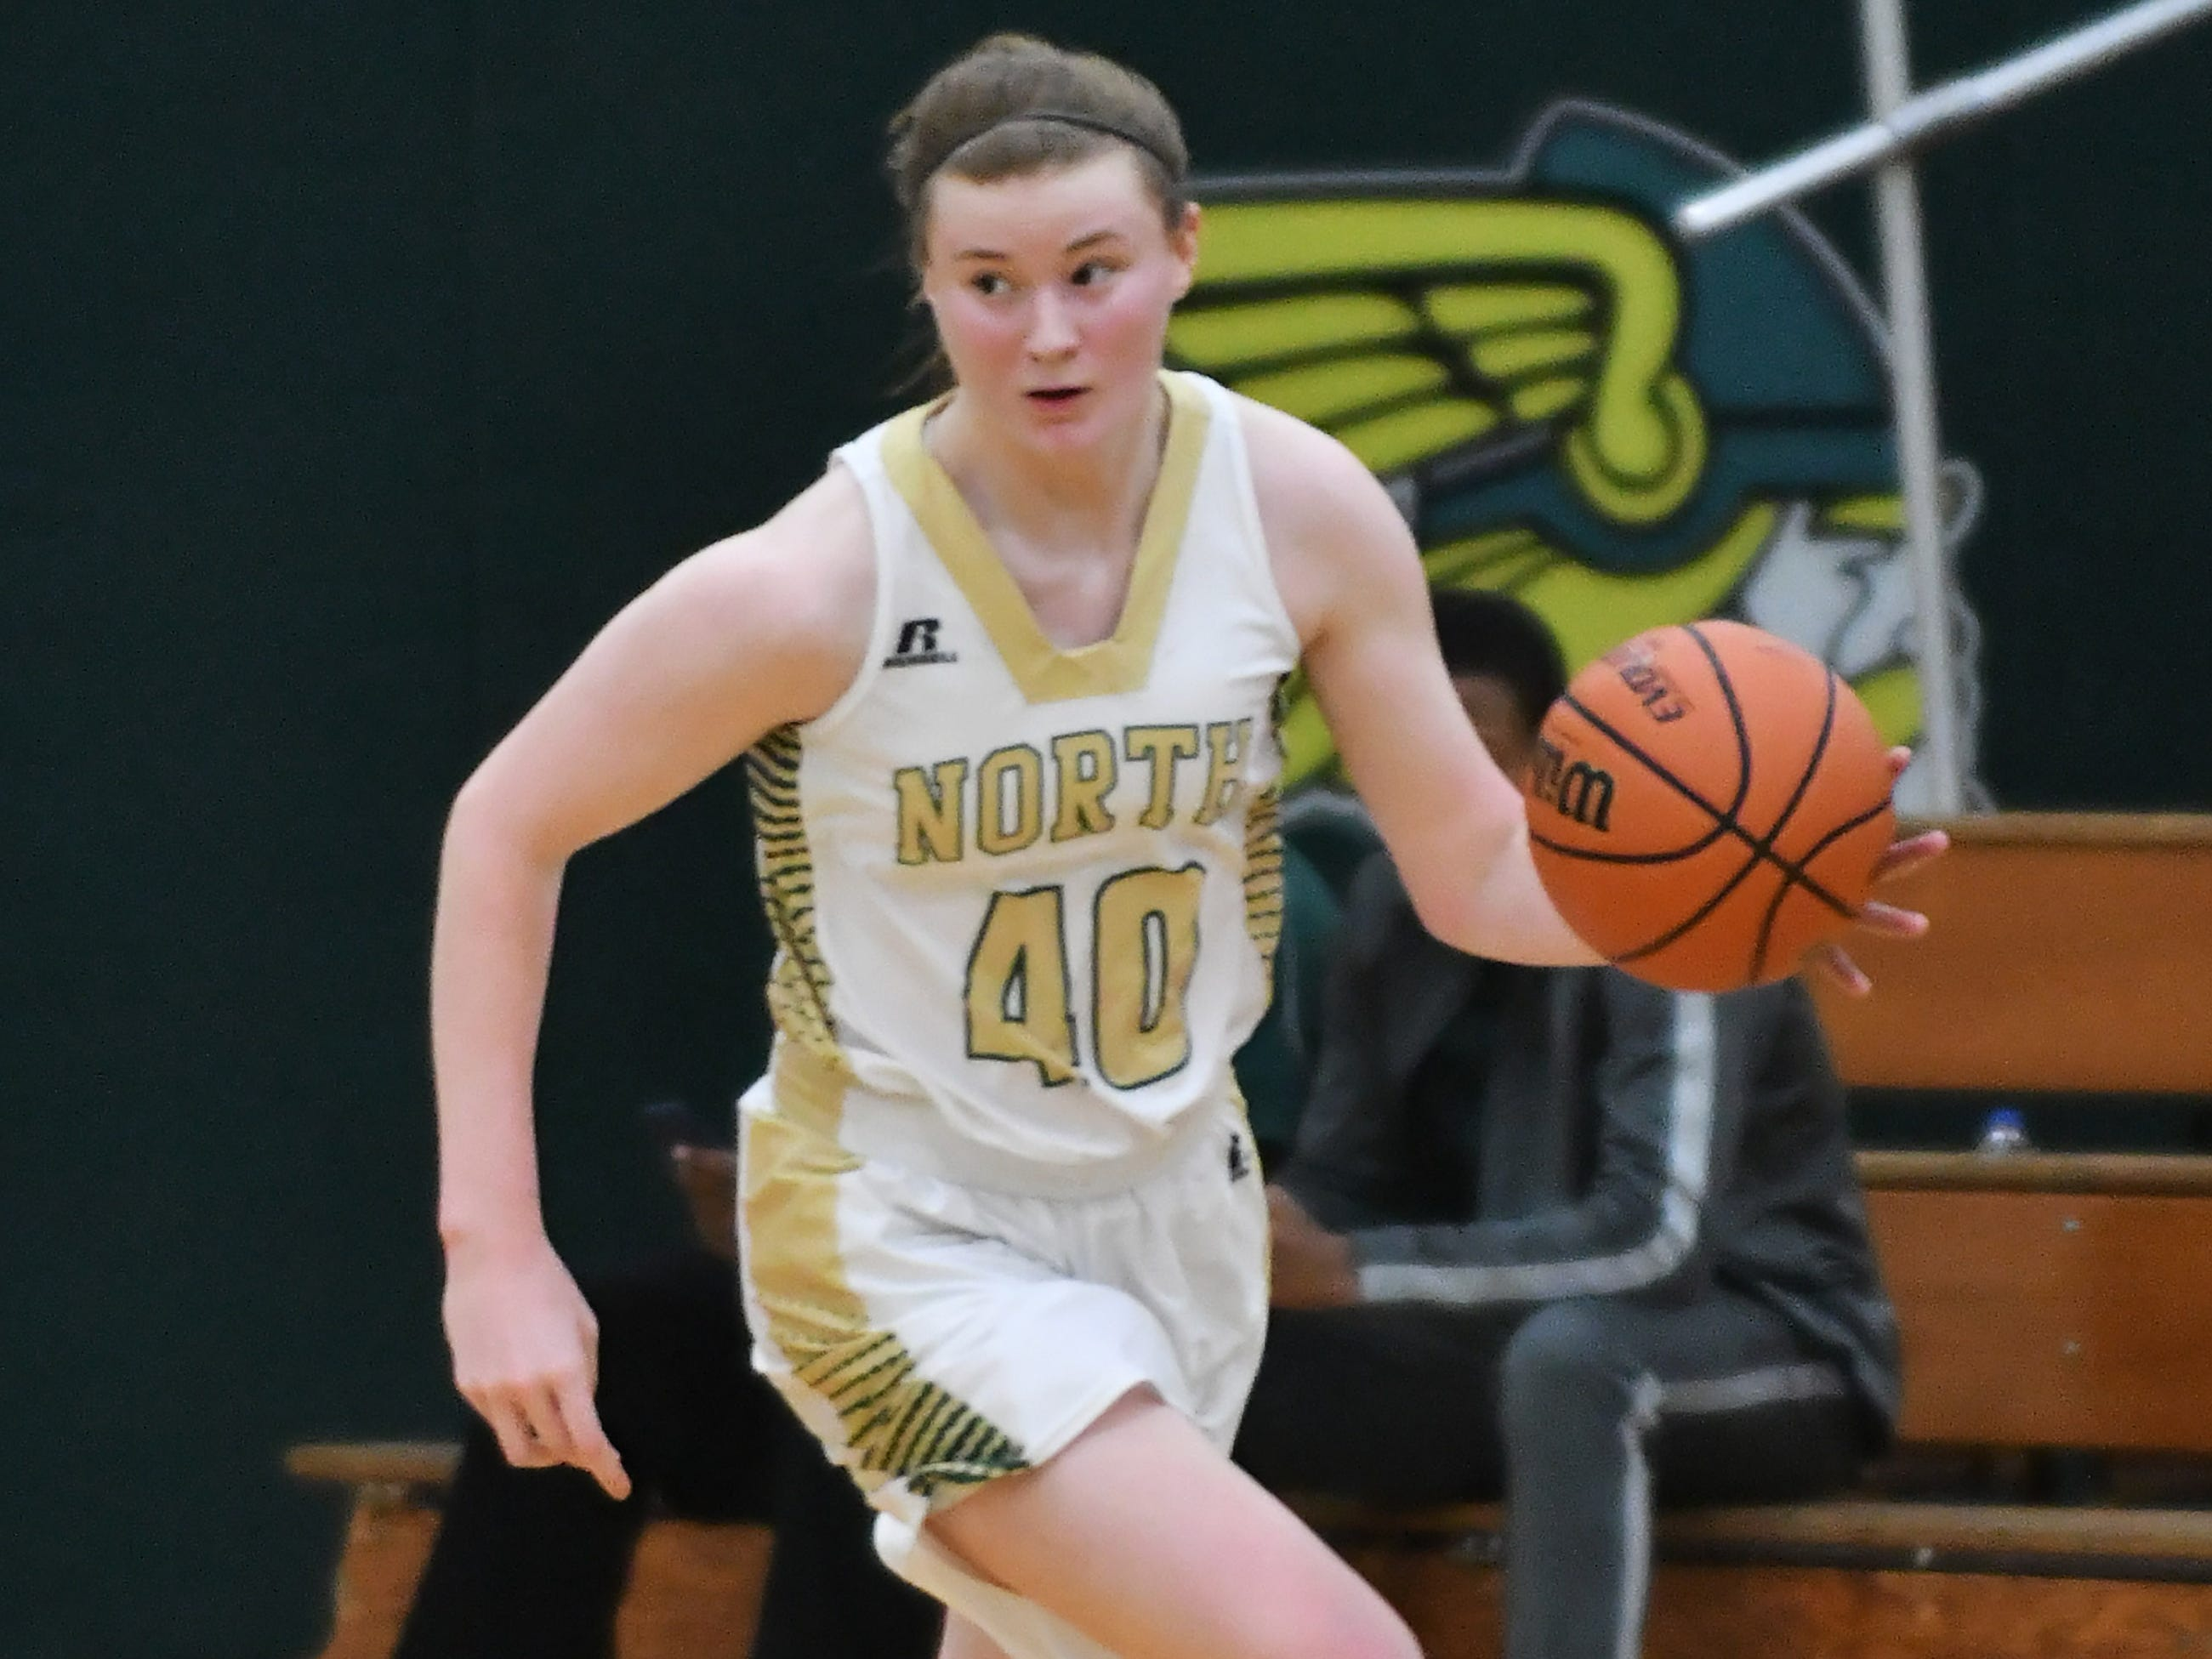 Grosse Pointe North's Julia Ayrault goes on a fast break in the second quarter.